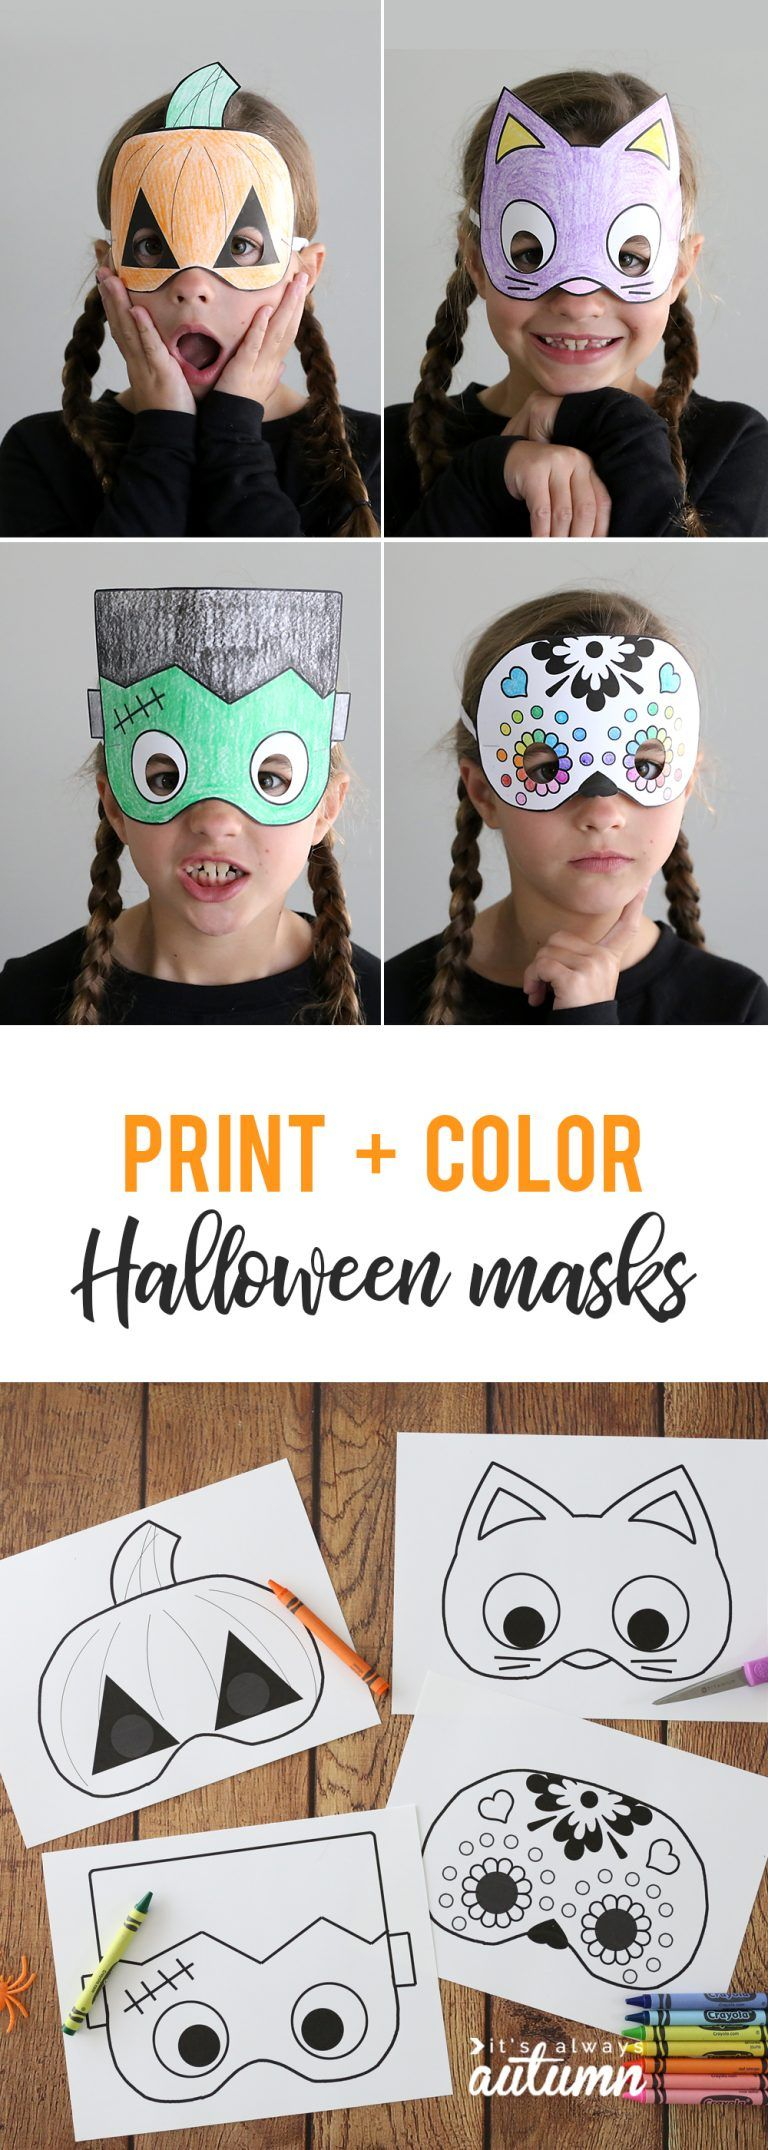 Halloween masks to print and color #halloweencraftsfortoddlers